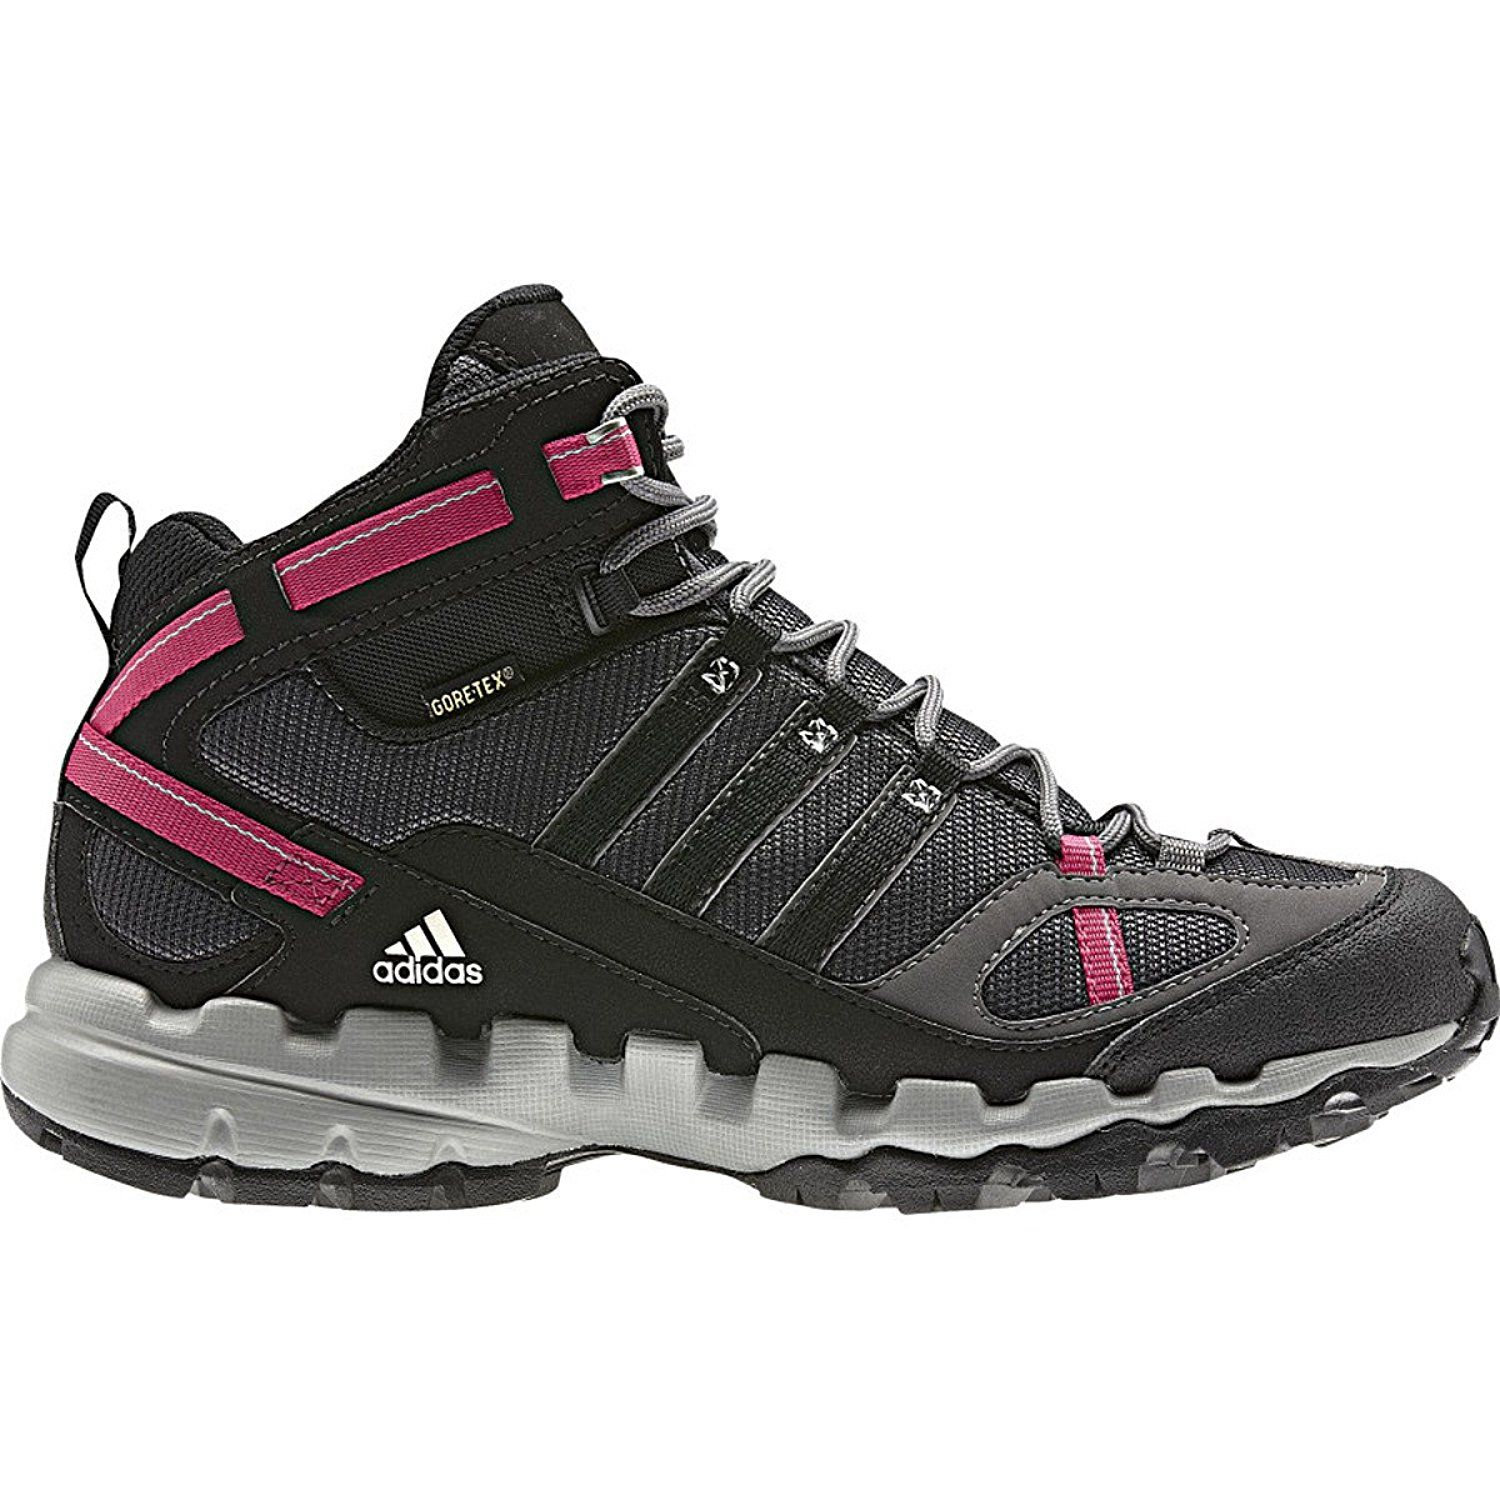 0ff926f1918c adidas AX 1 Mid GTX Hiking Boot - Women s     Read more reviews of ...